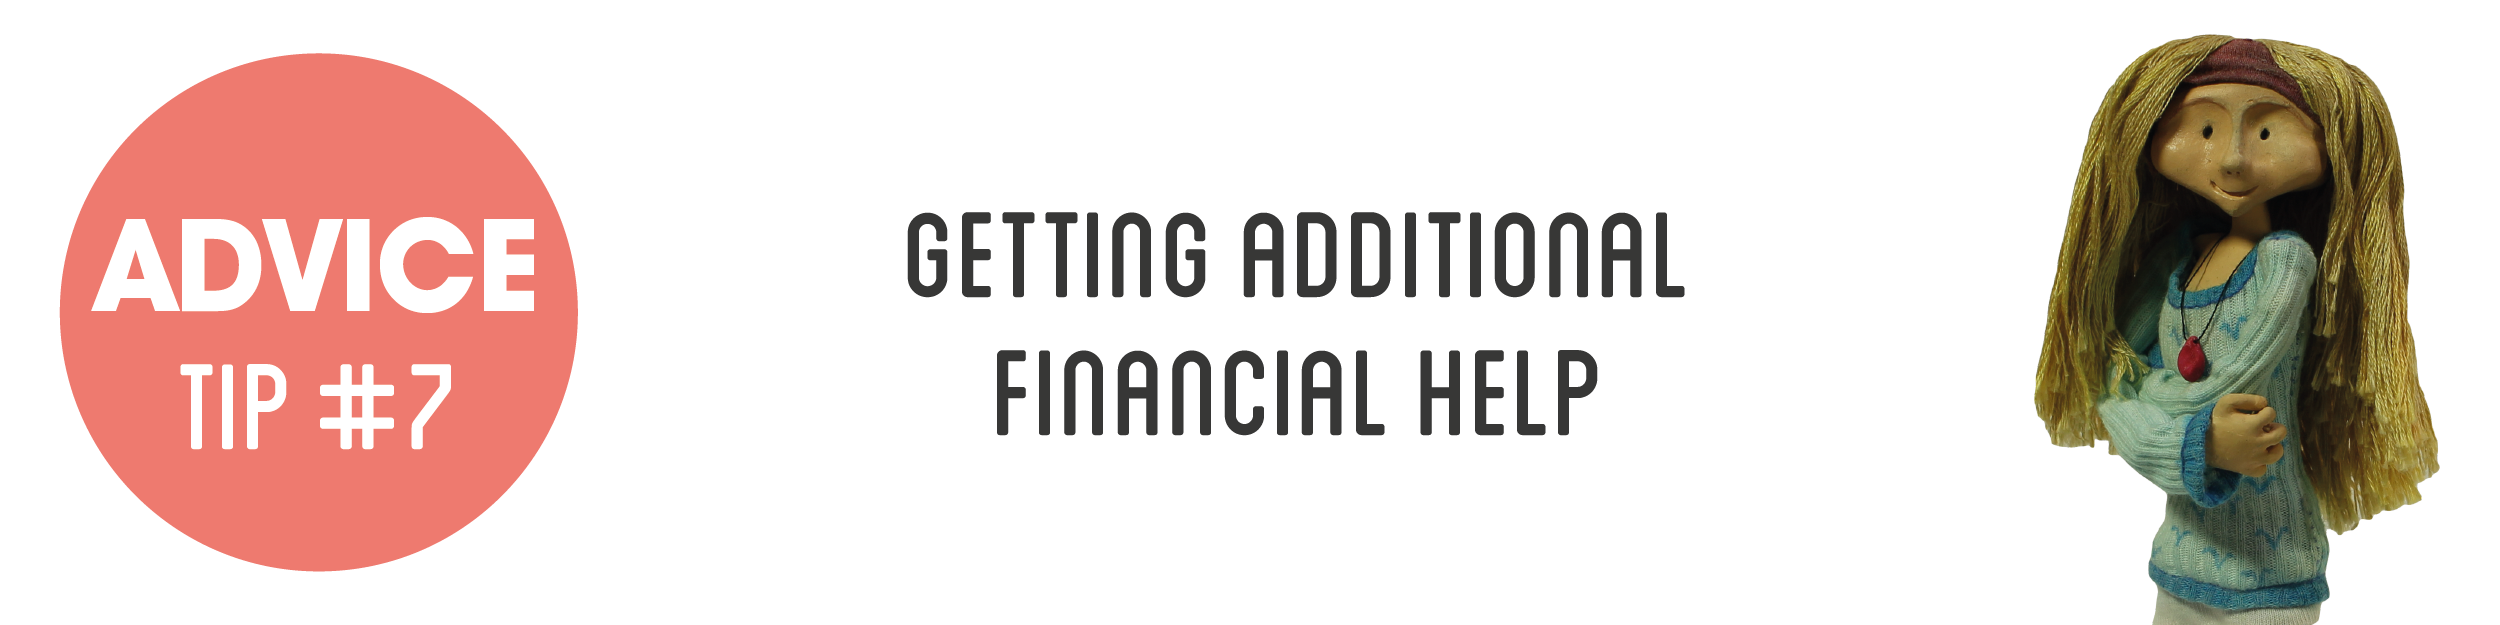 Advice Tip #7 - Getting additonal financial help